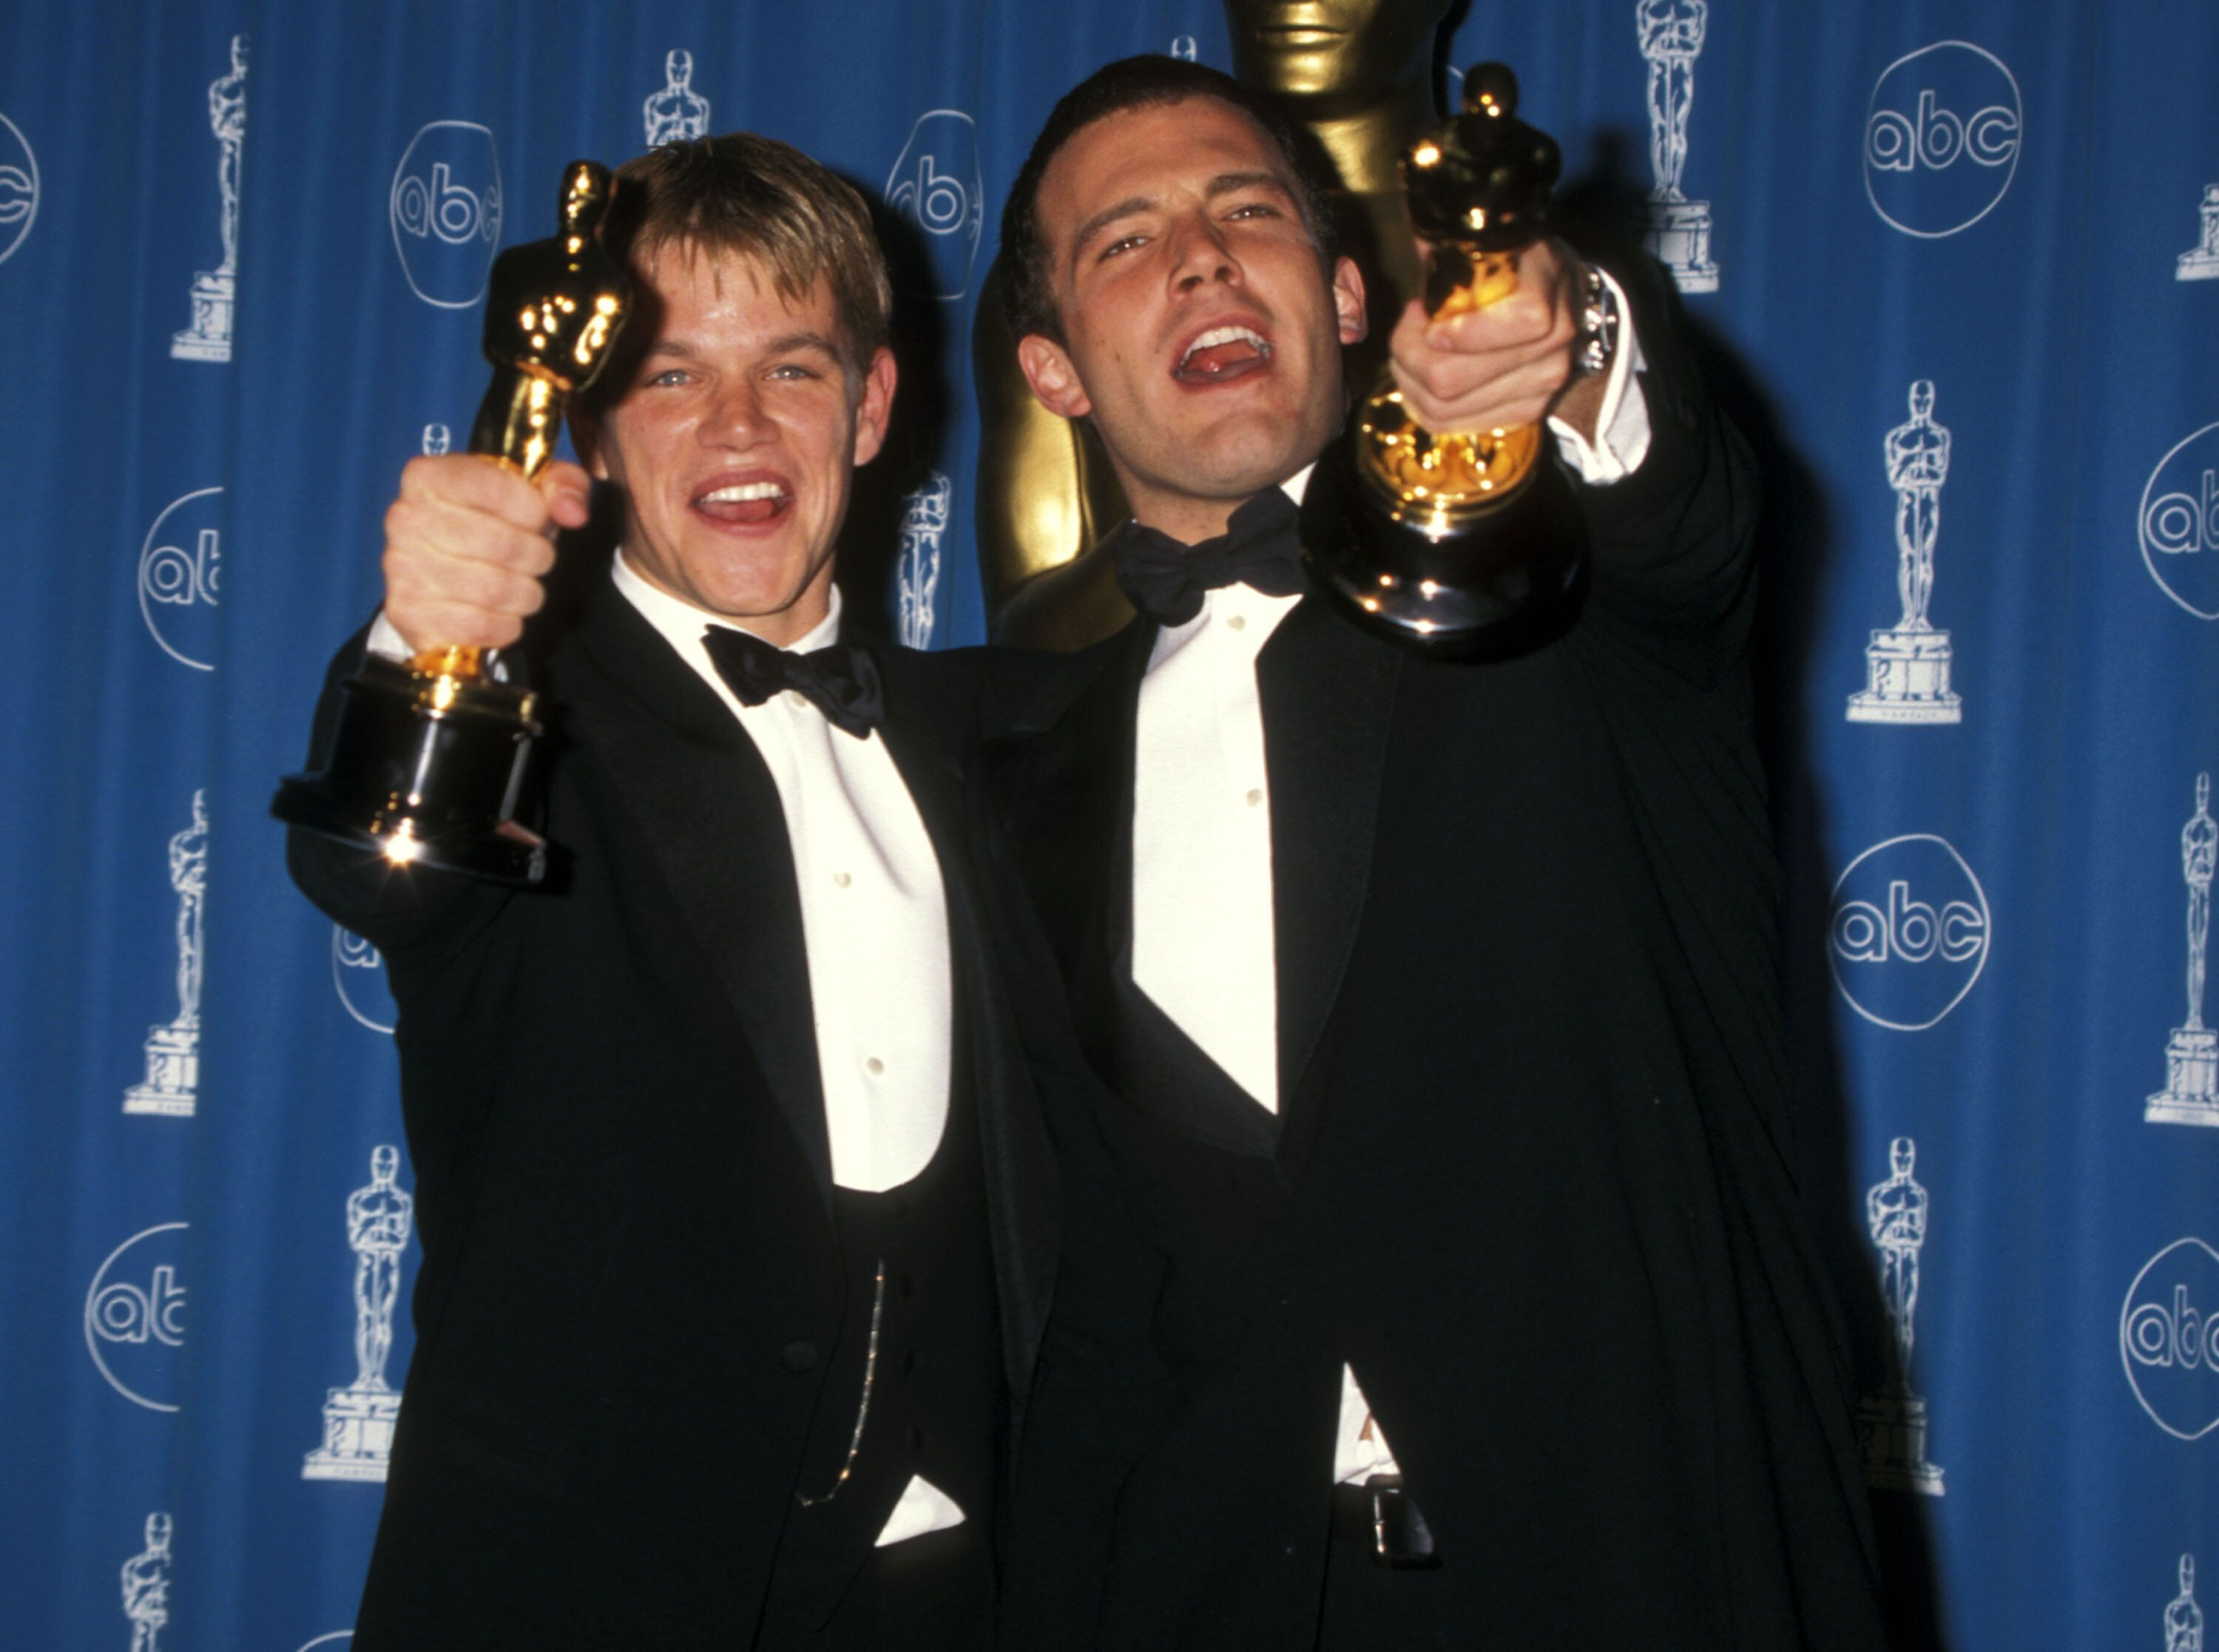 """Matt Damon and Ben Affleck with their Oscars for """"Good Will Hunting"""" in 1998."""